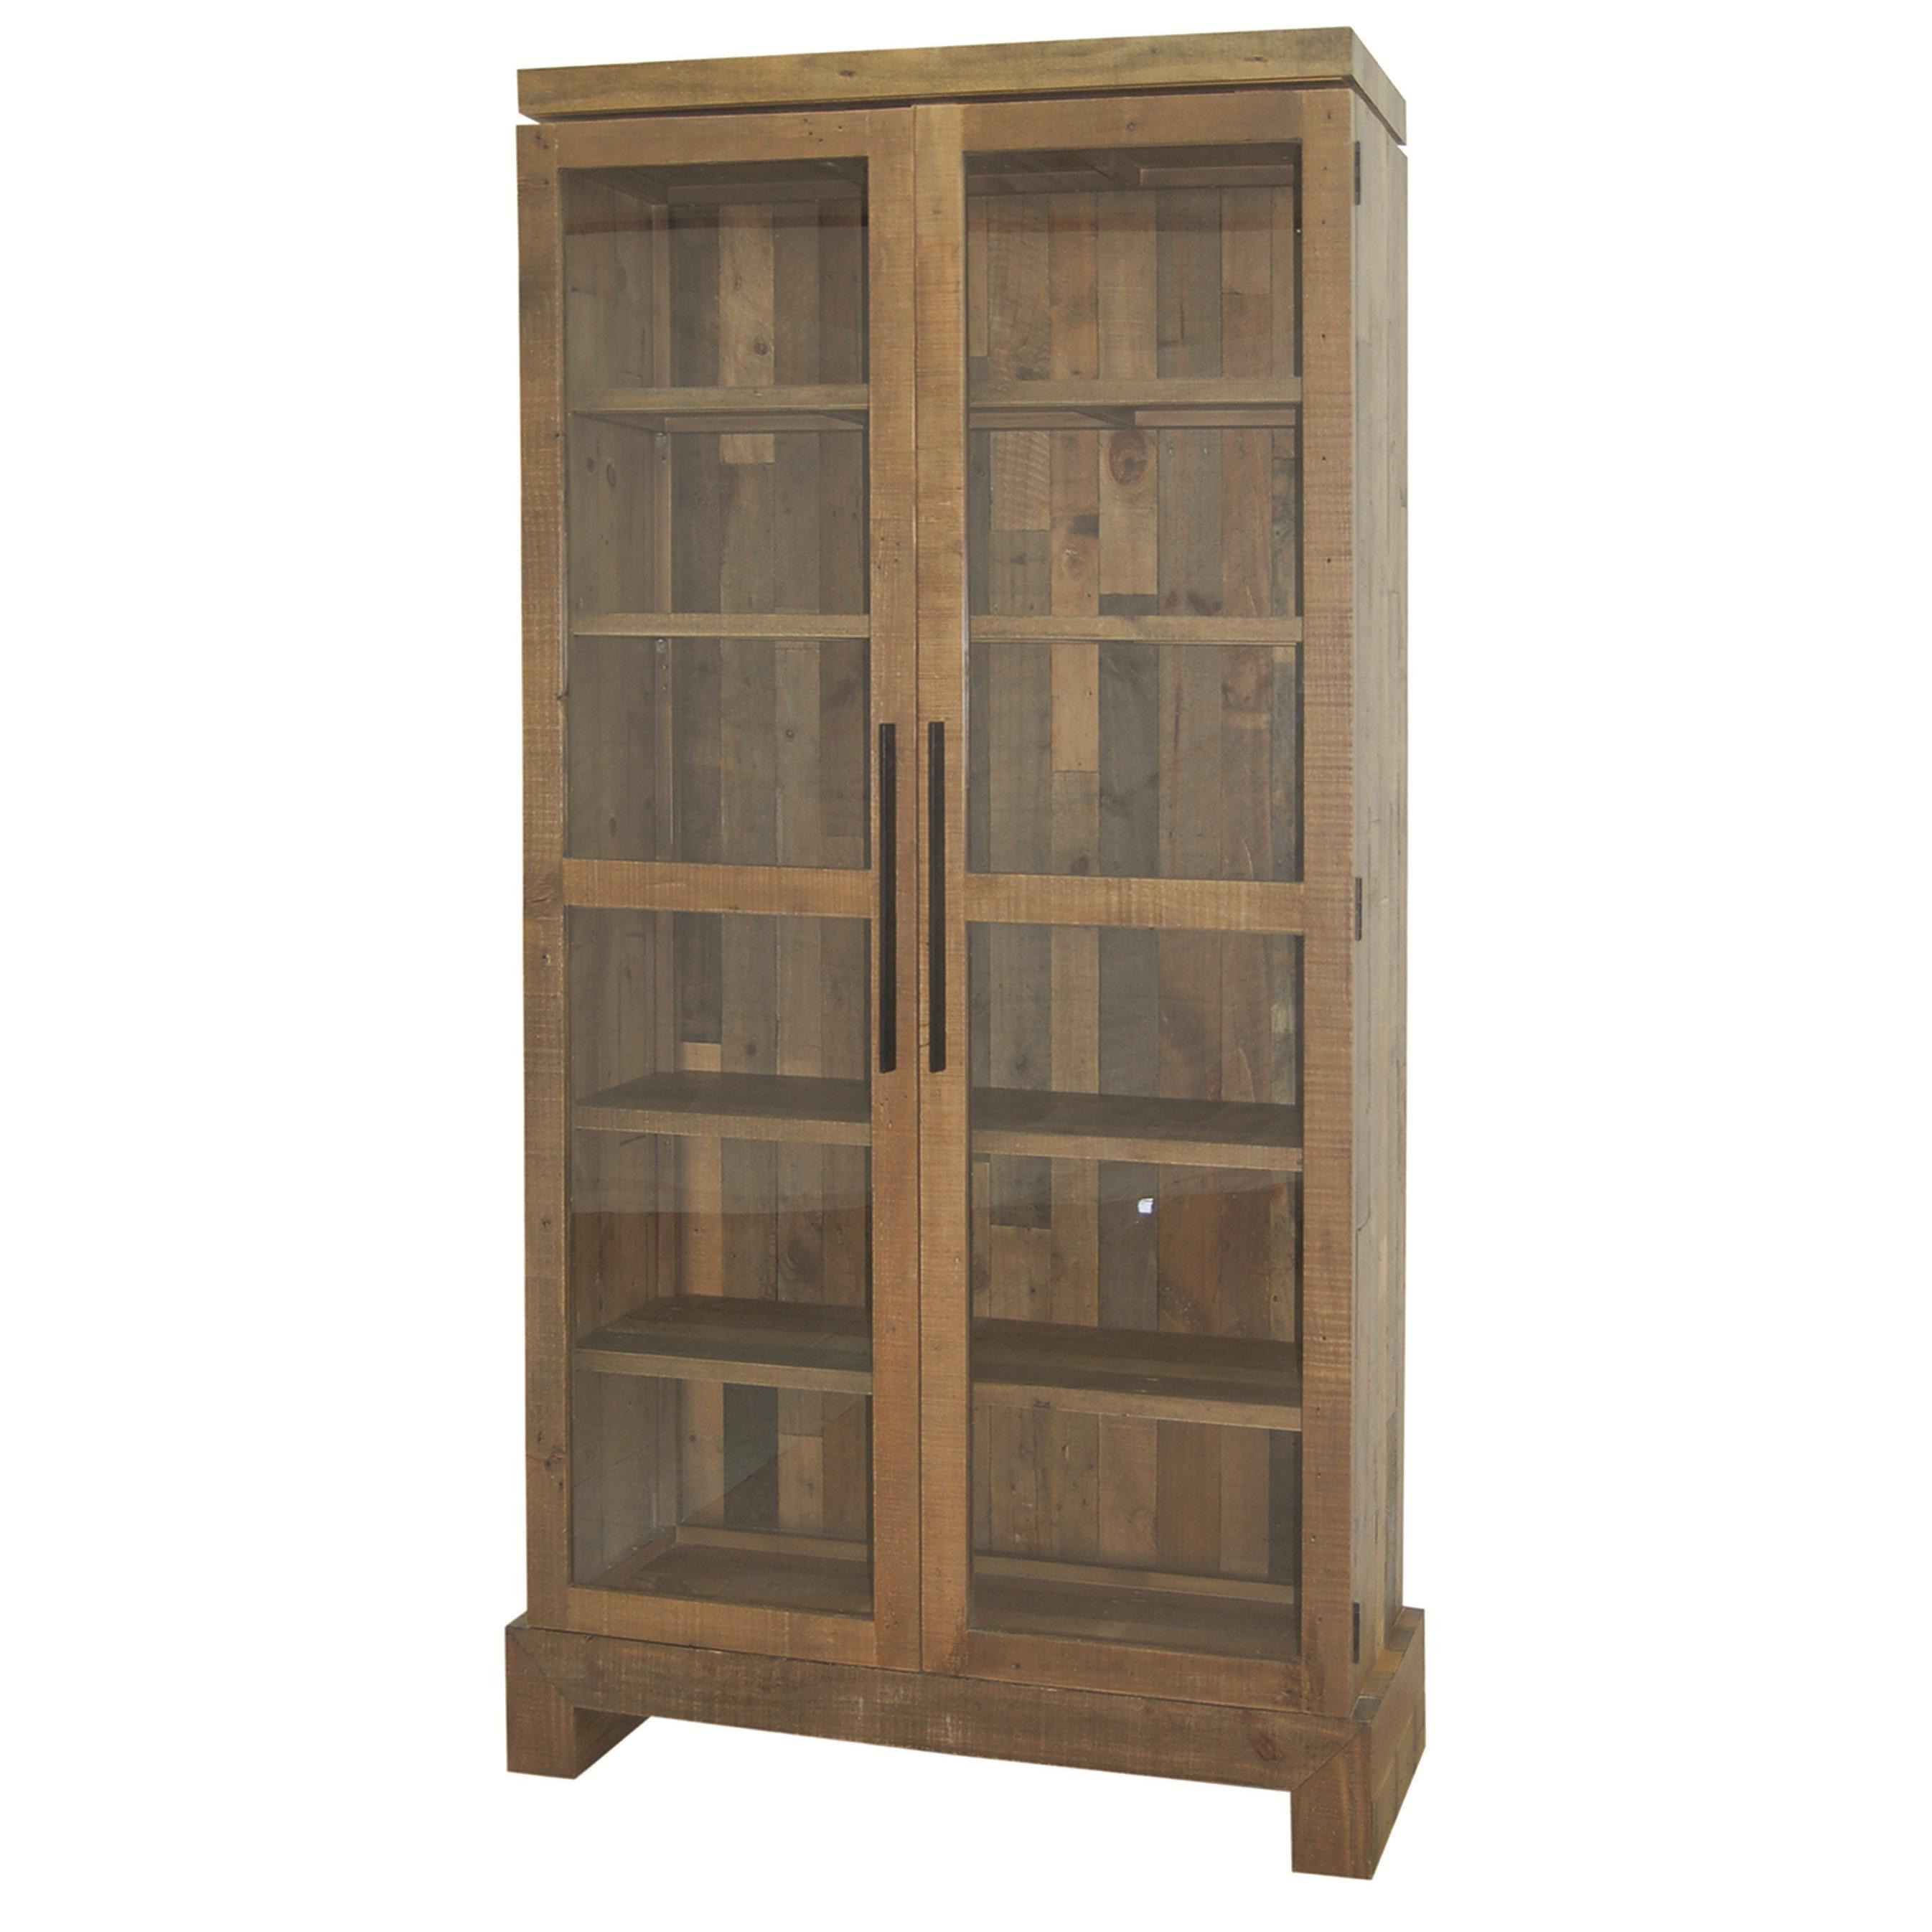 modern storage of shelving ceramic for wooden book glass vase floor size wall grey white enclosed full frame door bookcases a shelf windows bookcase kobicha slinding flower choosing light brown considerations